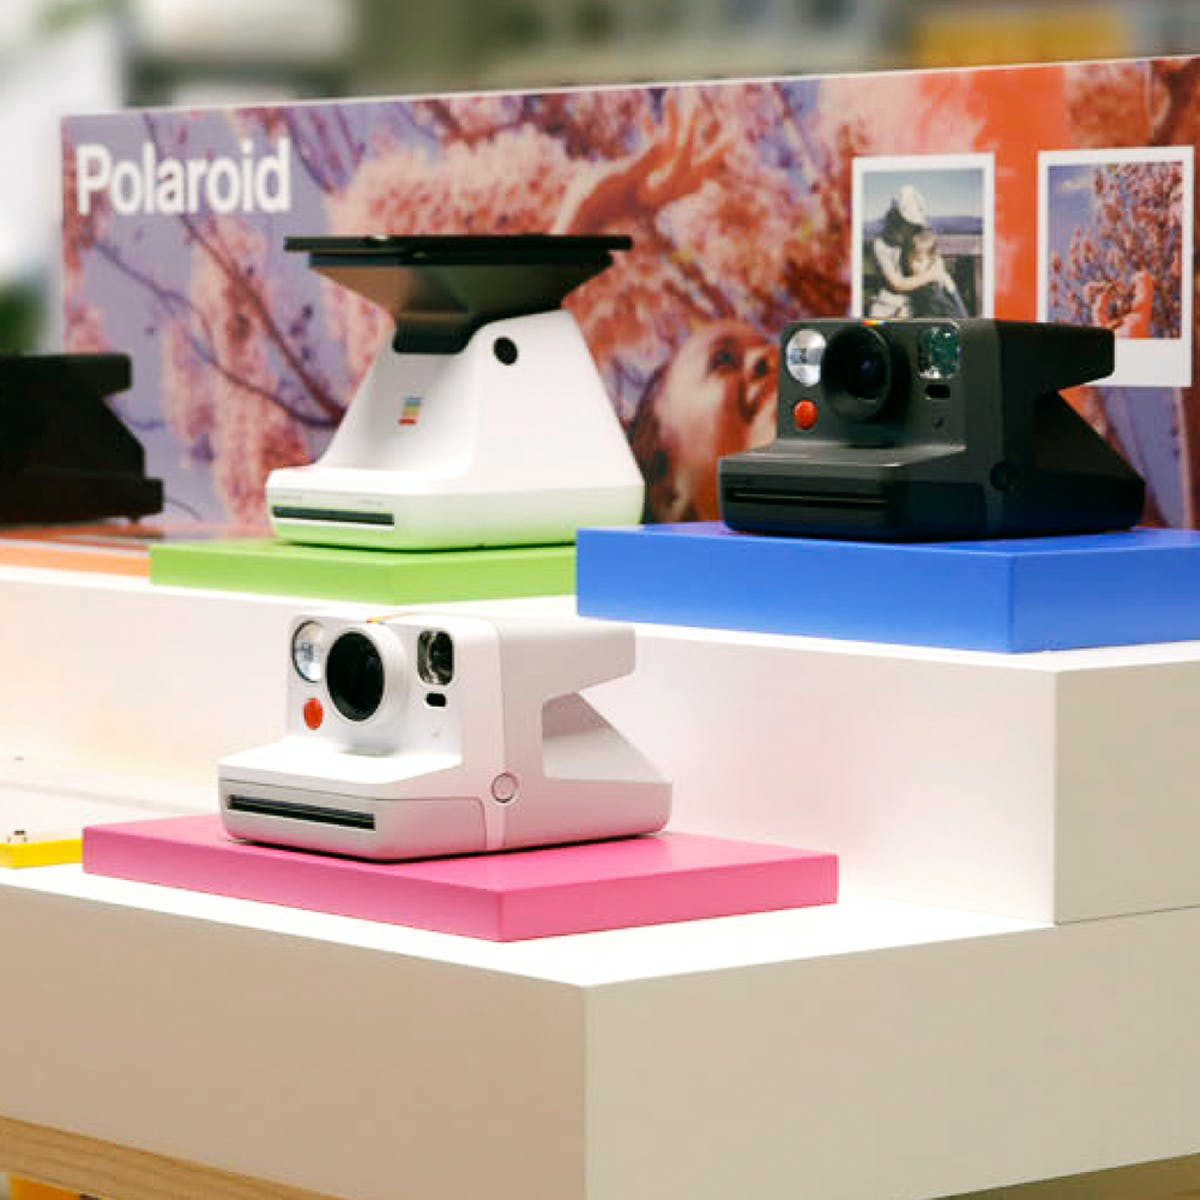 Polaroid unveils new identity to bring more clarity to brand